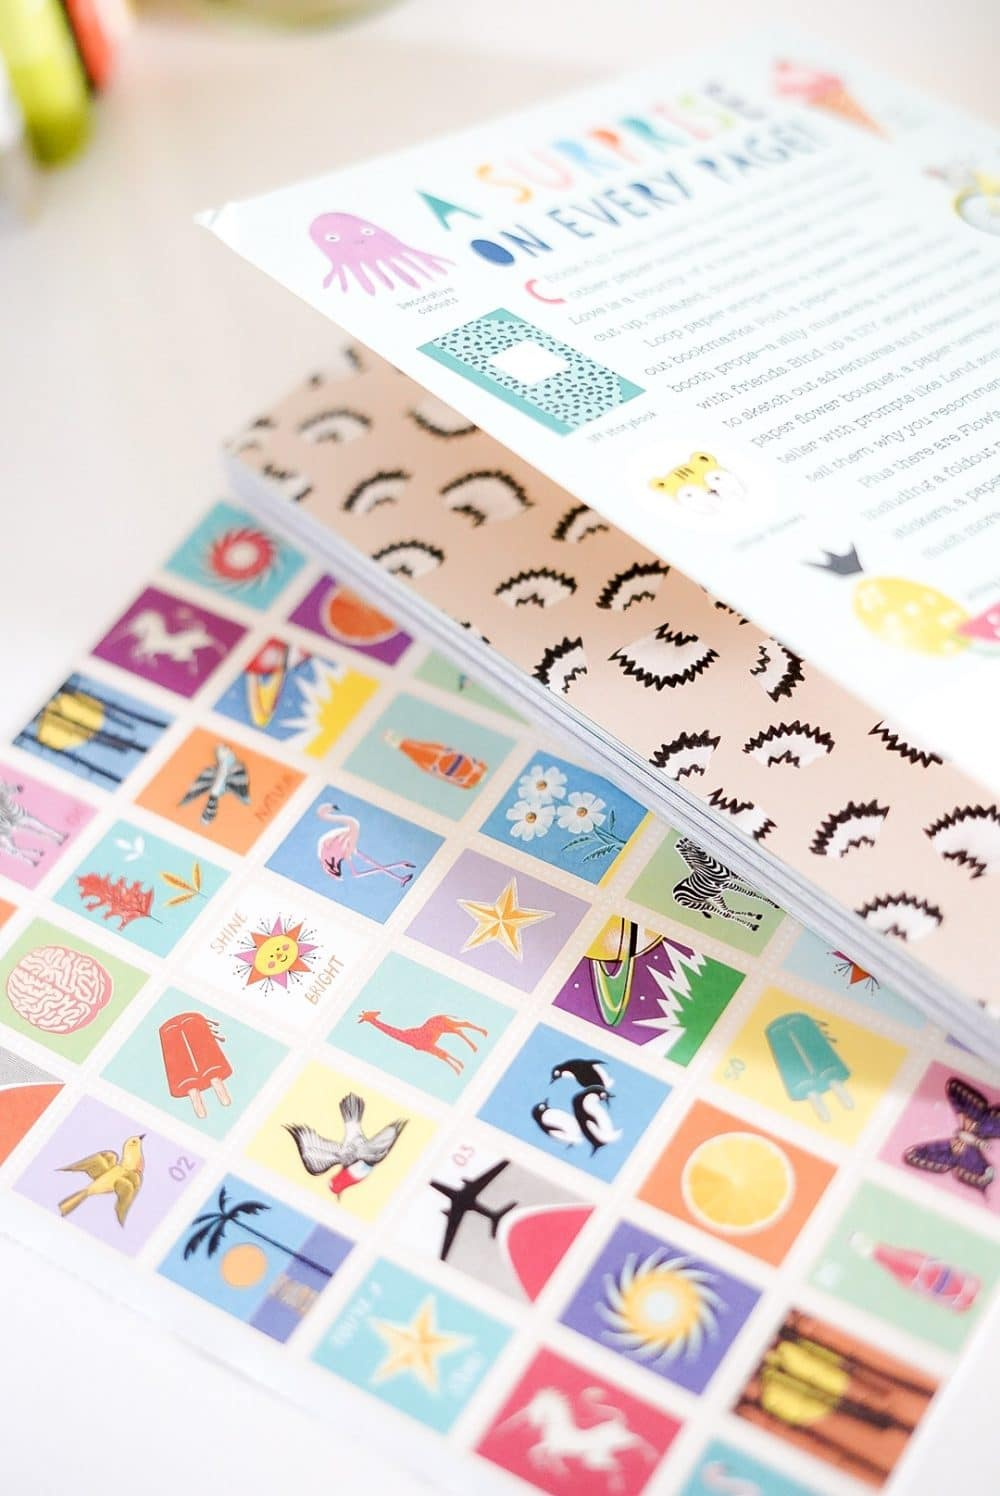 Paper junkies rejoice! The Kids Book of Paper Love is a gem.